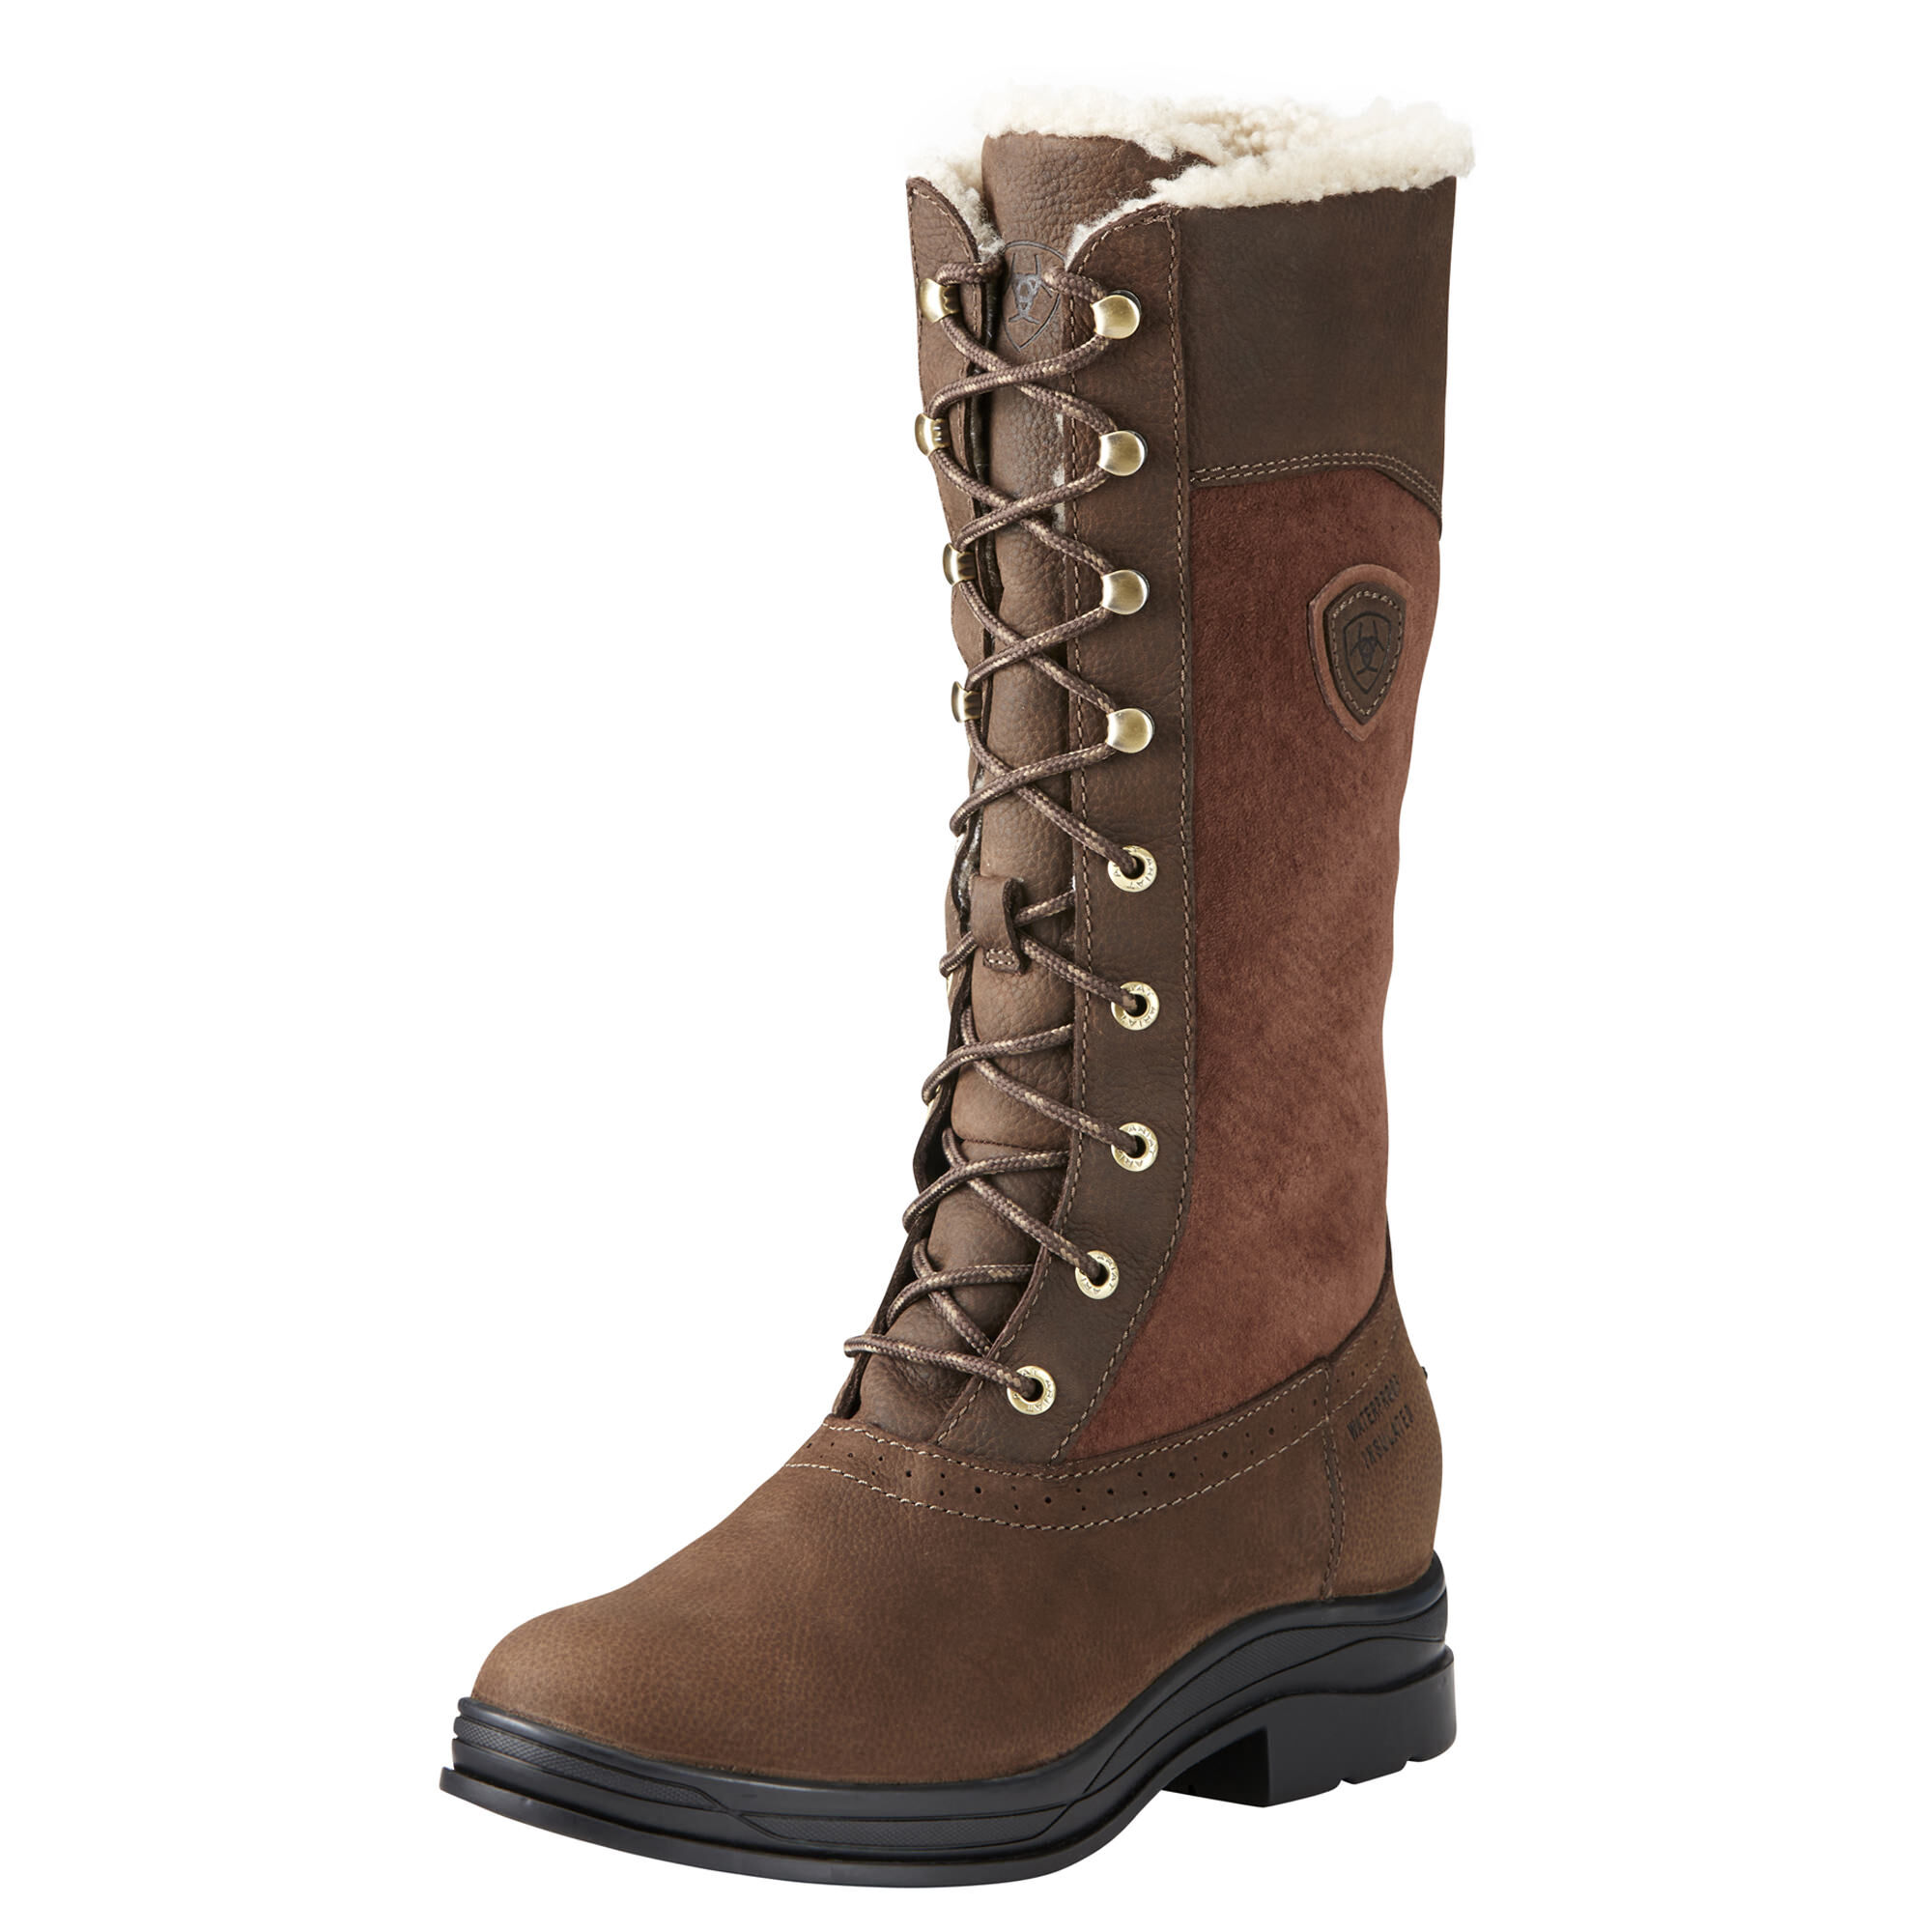 Ariat Wythburn H2O Insulated Leather Boots